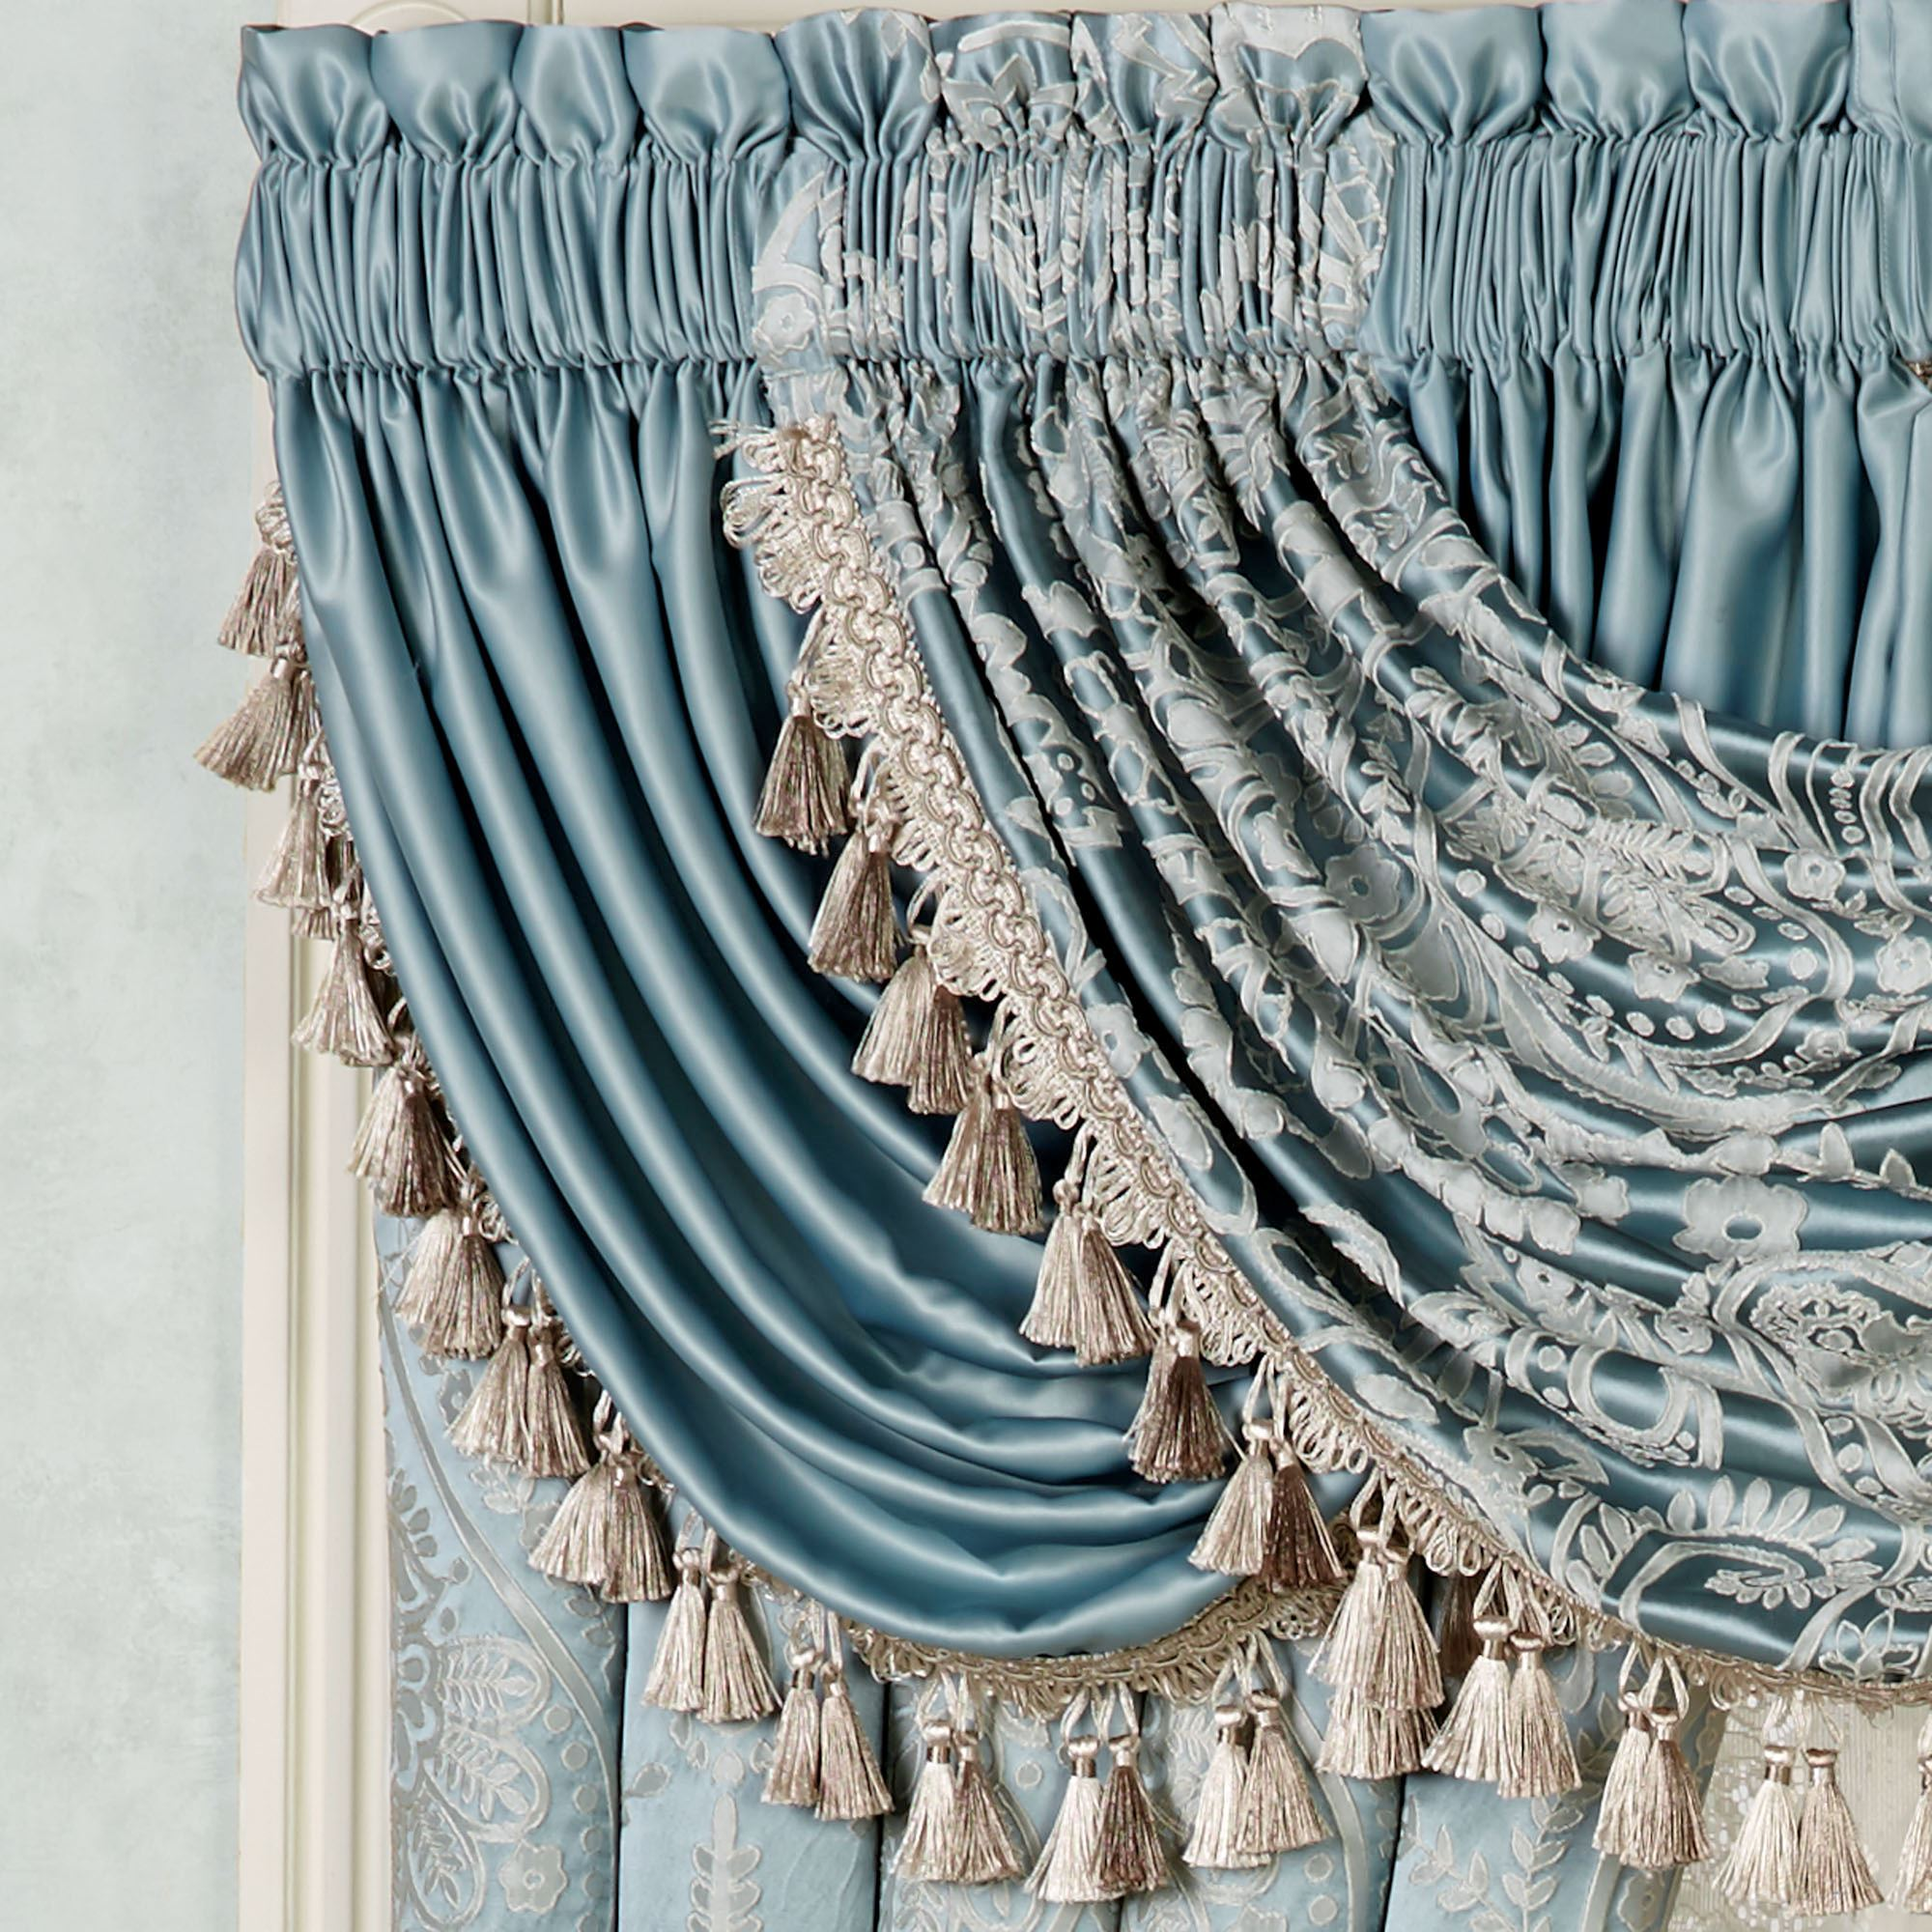 of waterfall valance class touch x hang expand click p versailles how to